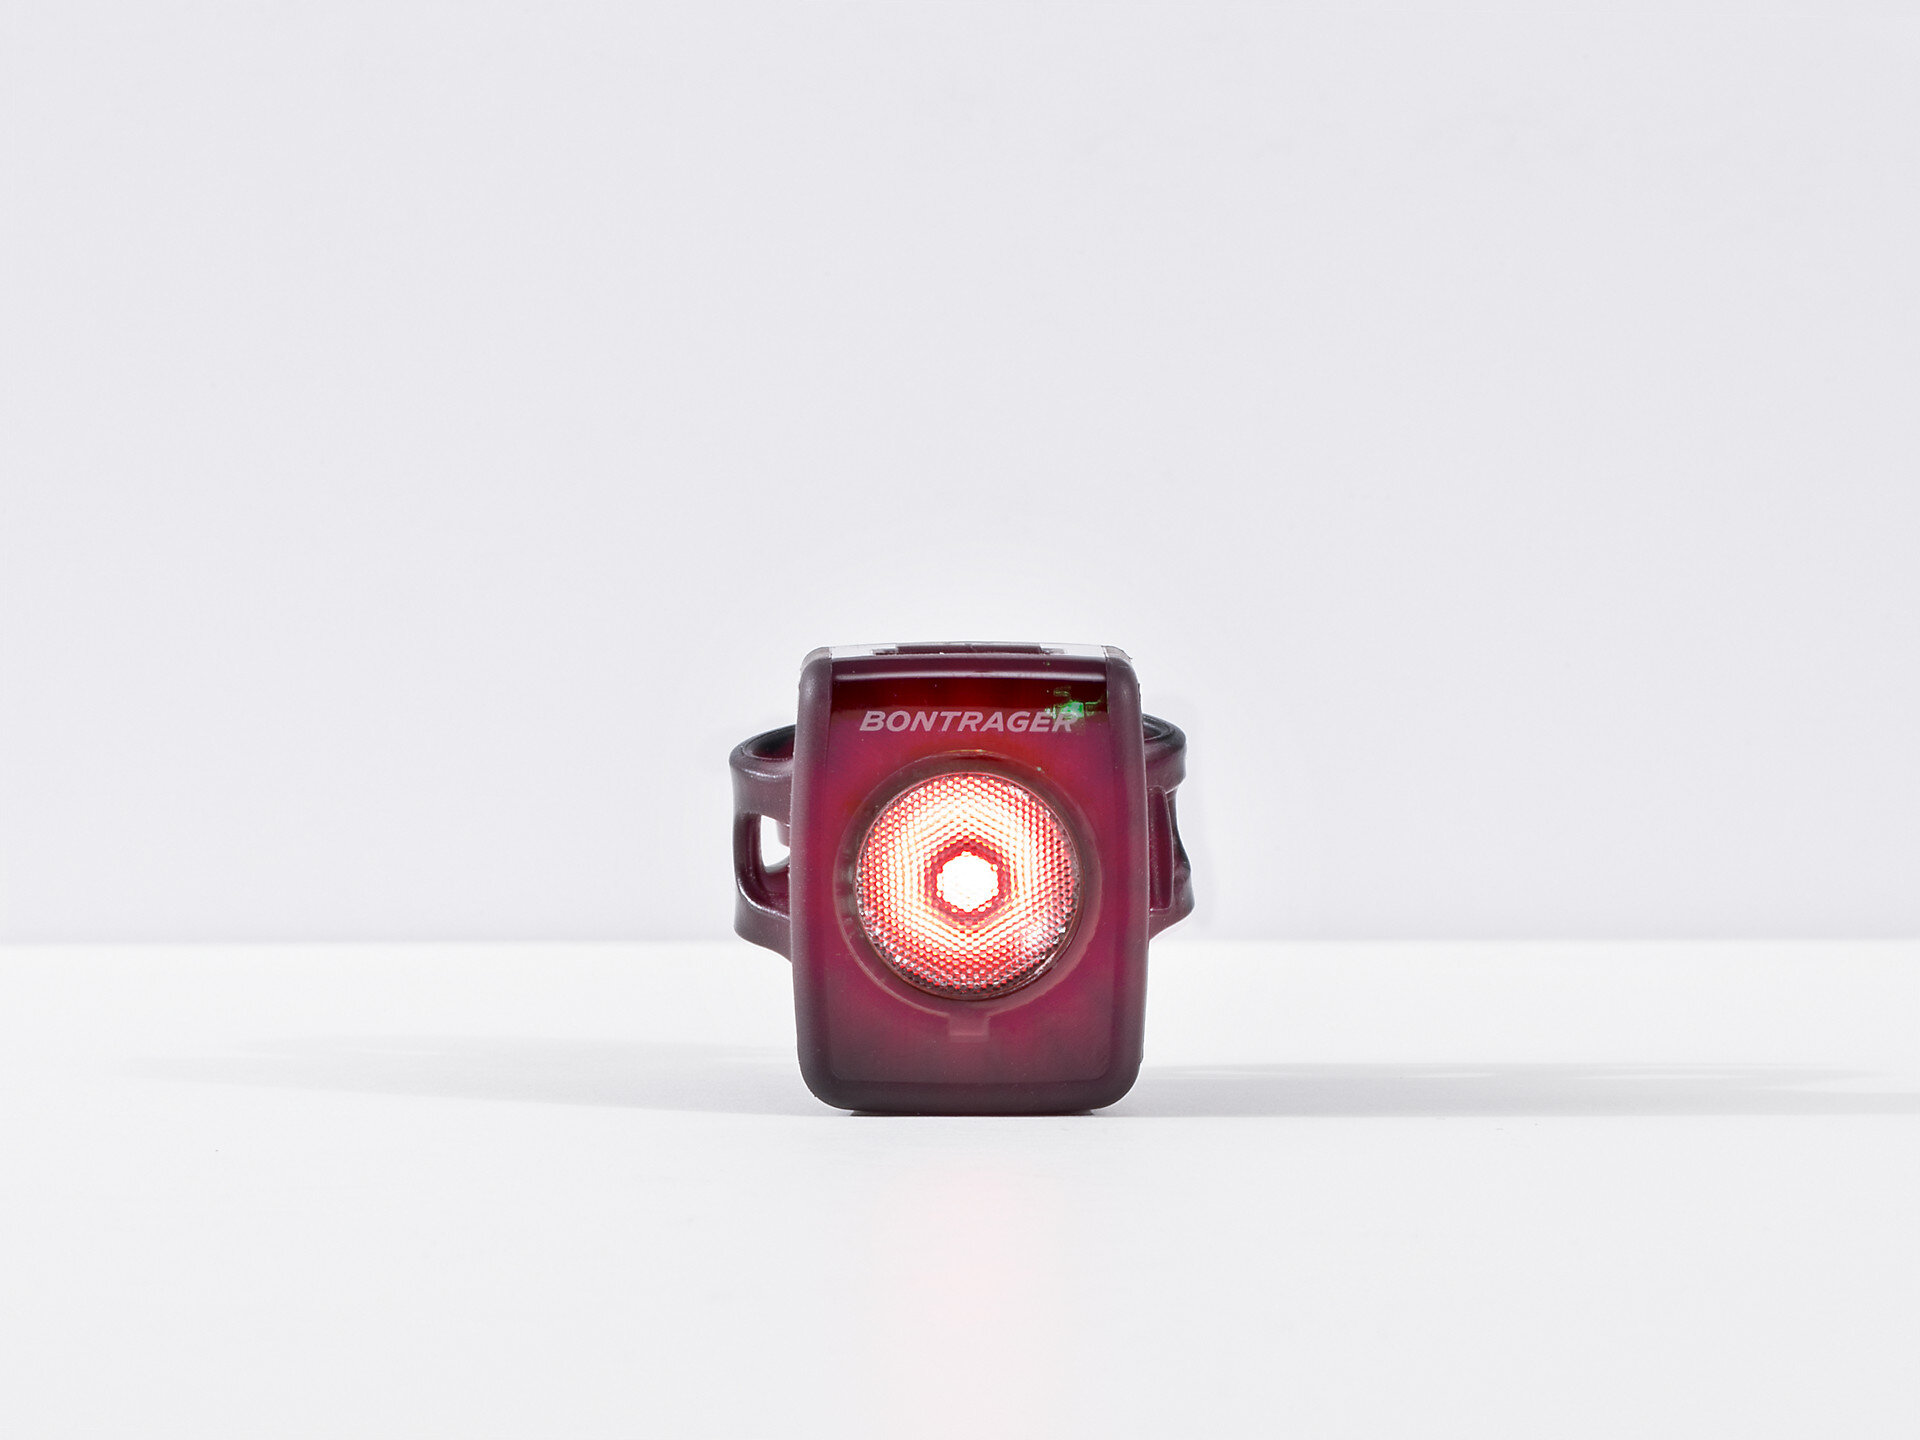 The newly designed Bontrager RT Flare rear light - offering up to 90 lumens.